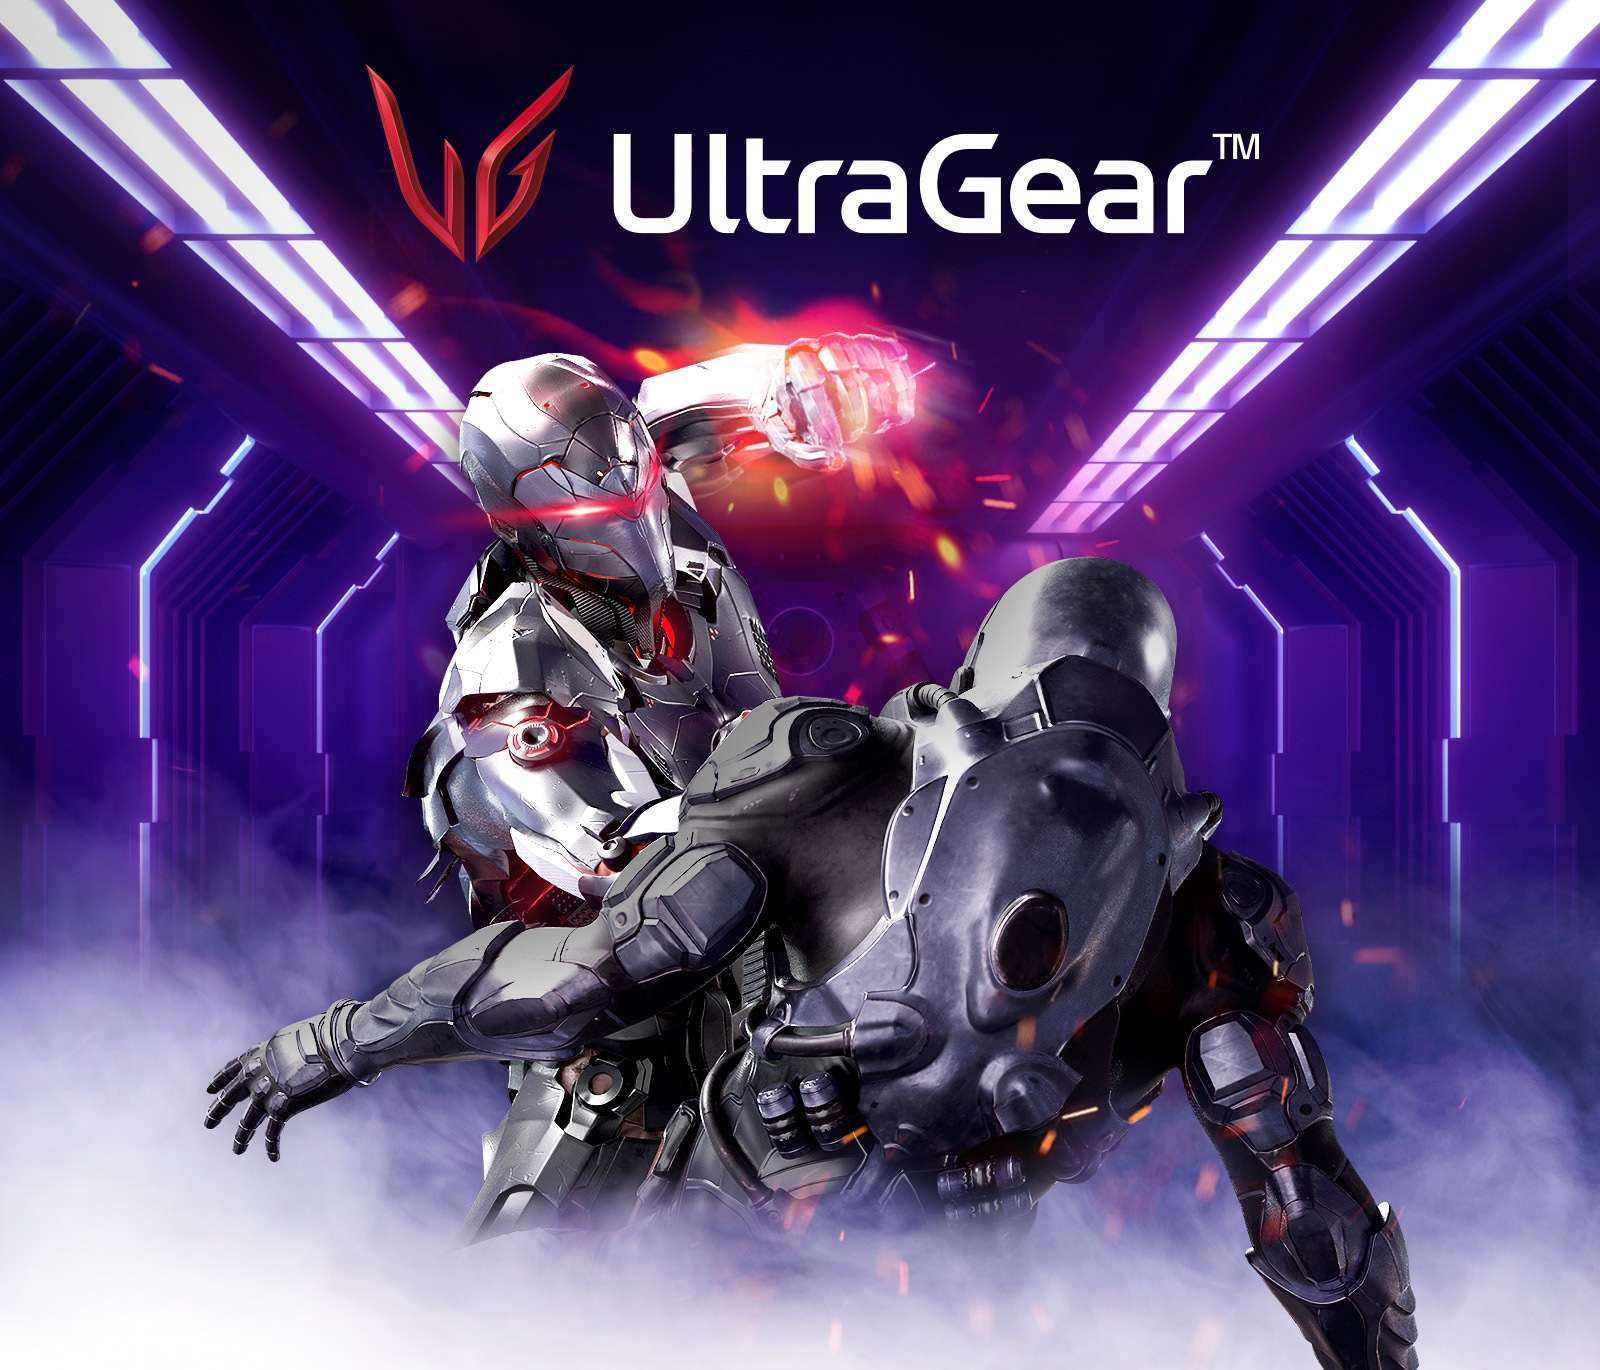 New ultragear emblem logo is on top of image. The main character overpowers the enemy.